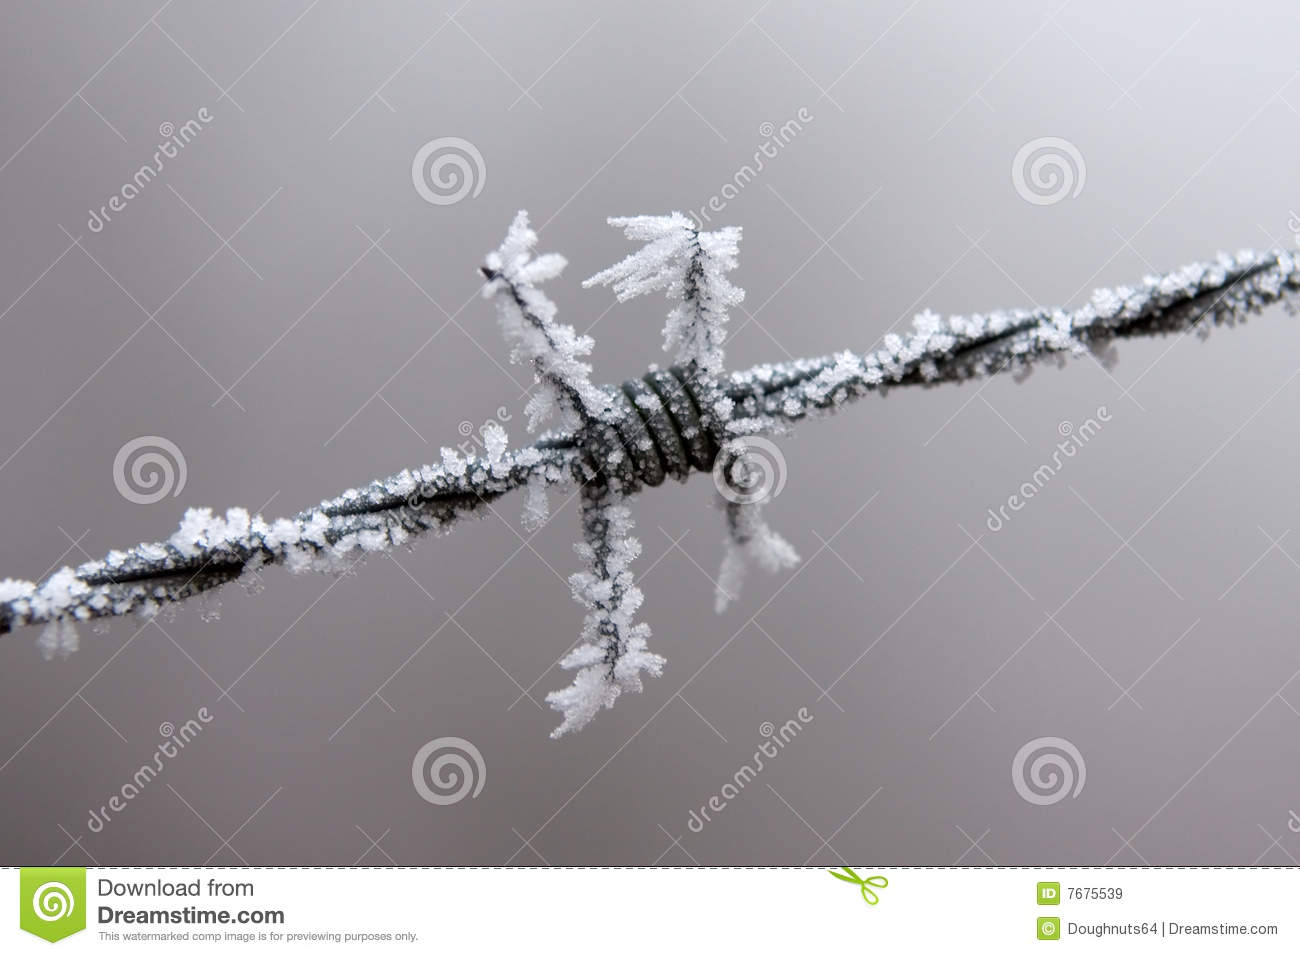 Frost on this barb of barbed wire on this very cold day in winter it